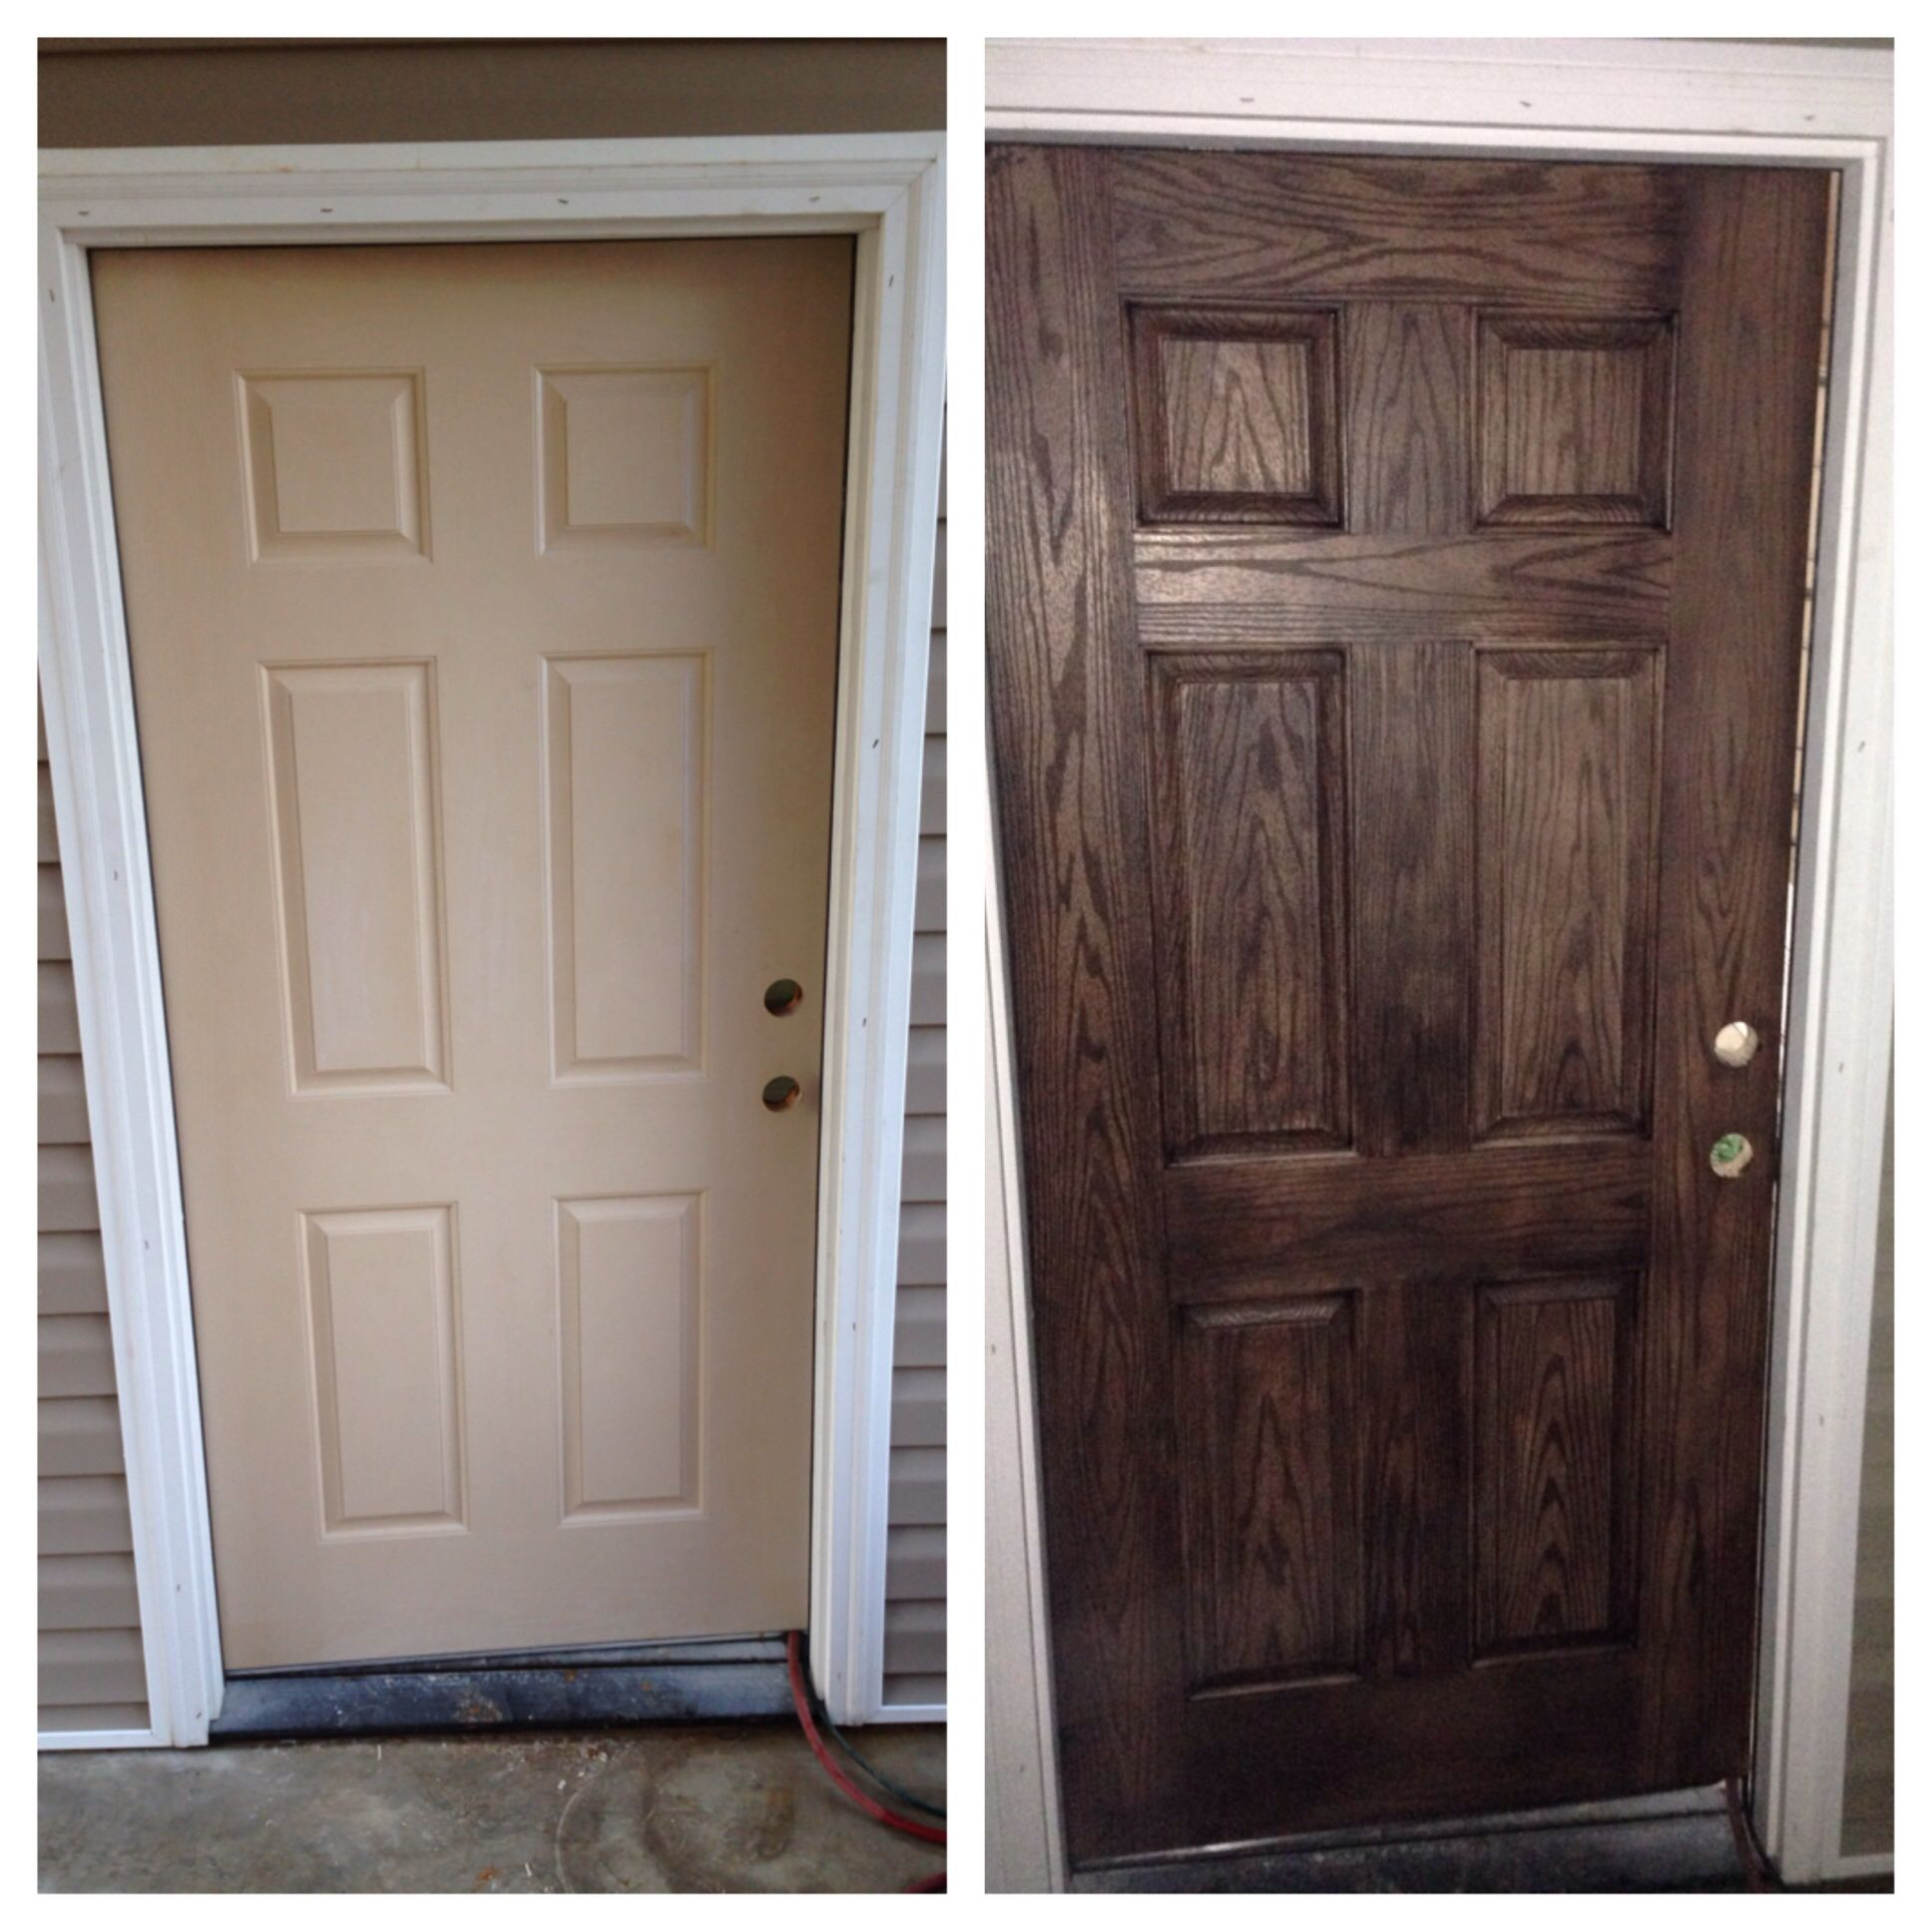 Before And After Of My Fiberglass Garage Door I Didn T Even Use A Whole 1 2 Pint Container Of The Javagelst Home Remodeling Fiberglass Garage Doors Wood Doors